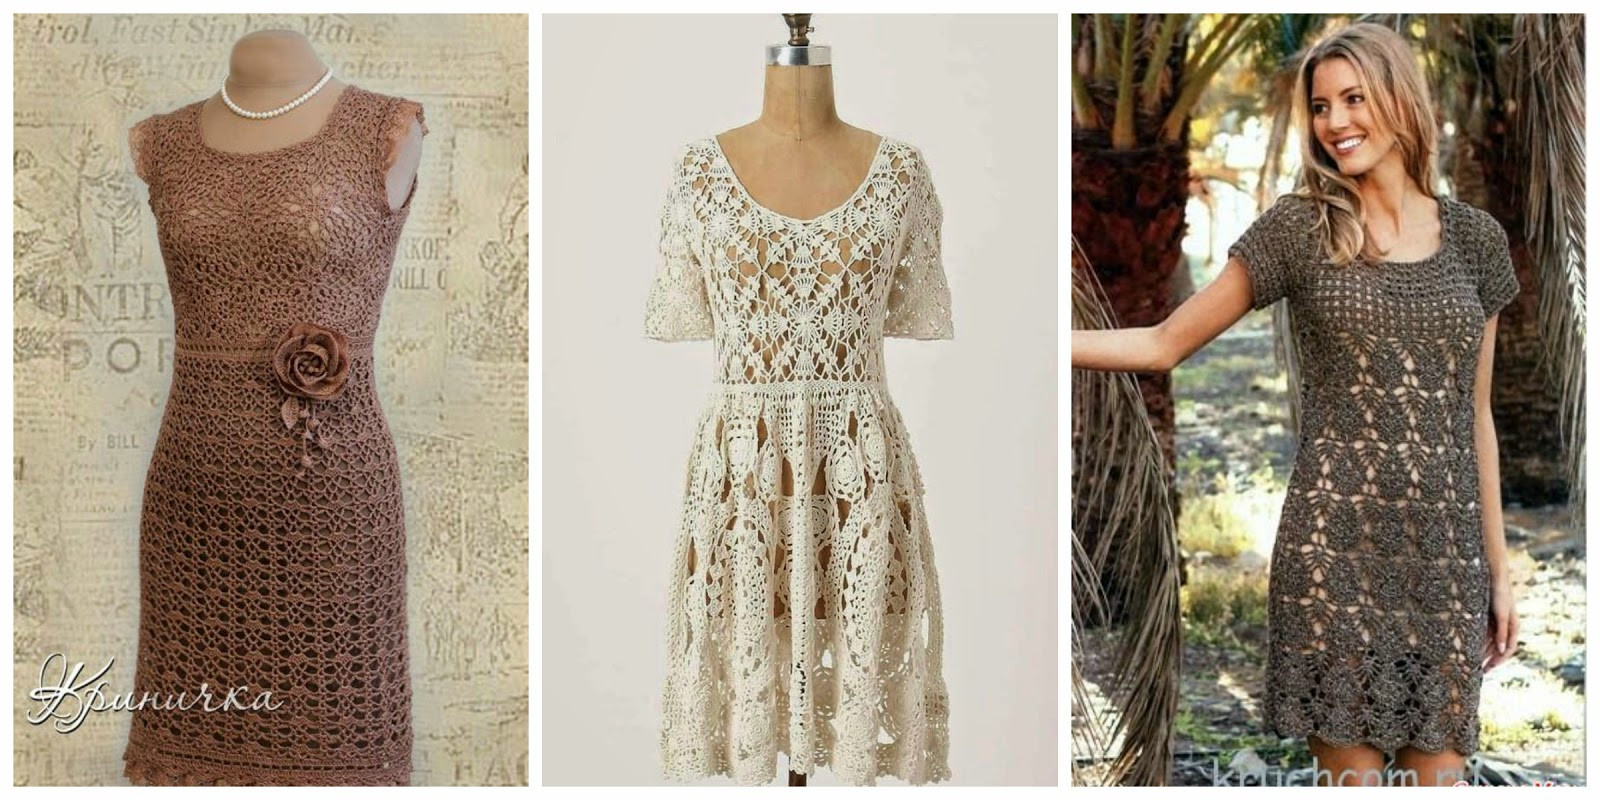 Crochet Clothing Luxury Add Spice to Your Wardrobe with Crochet Dress Patterns Of Awesome 49 Images Crochet Clothing